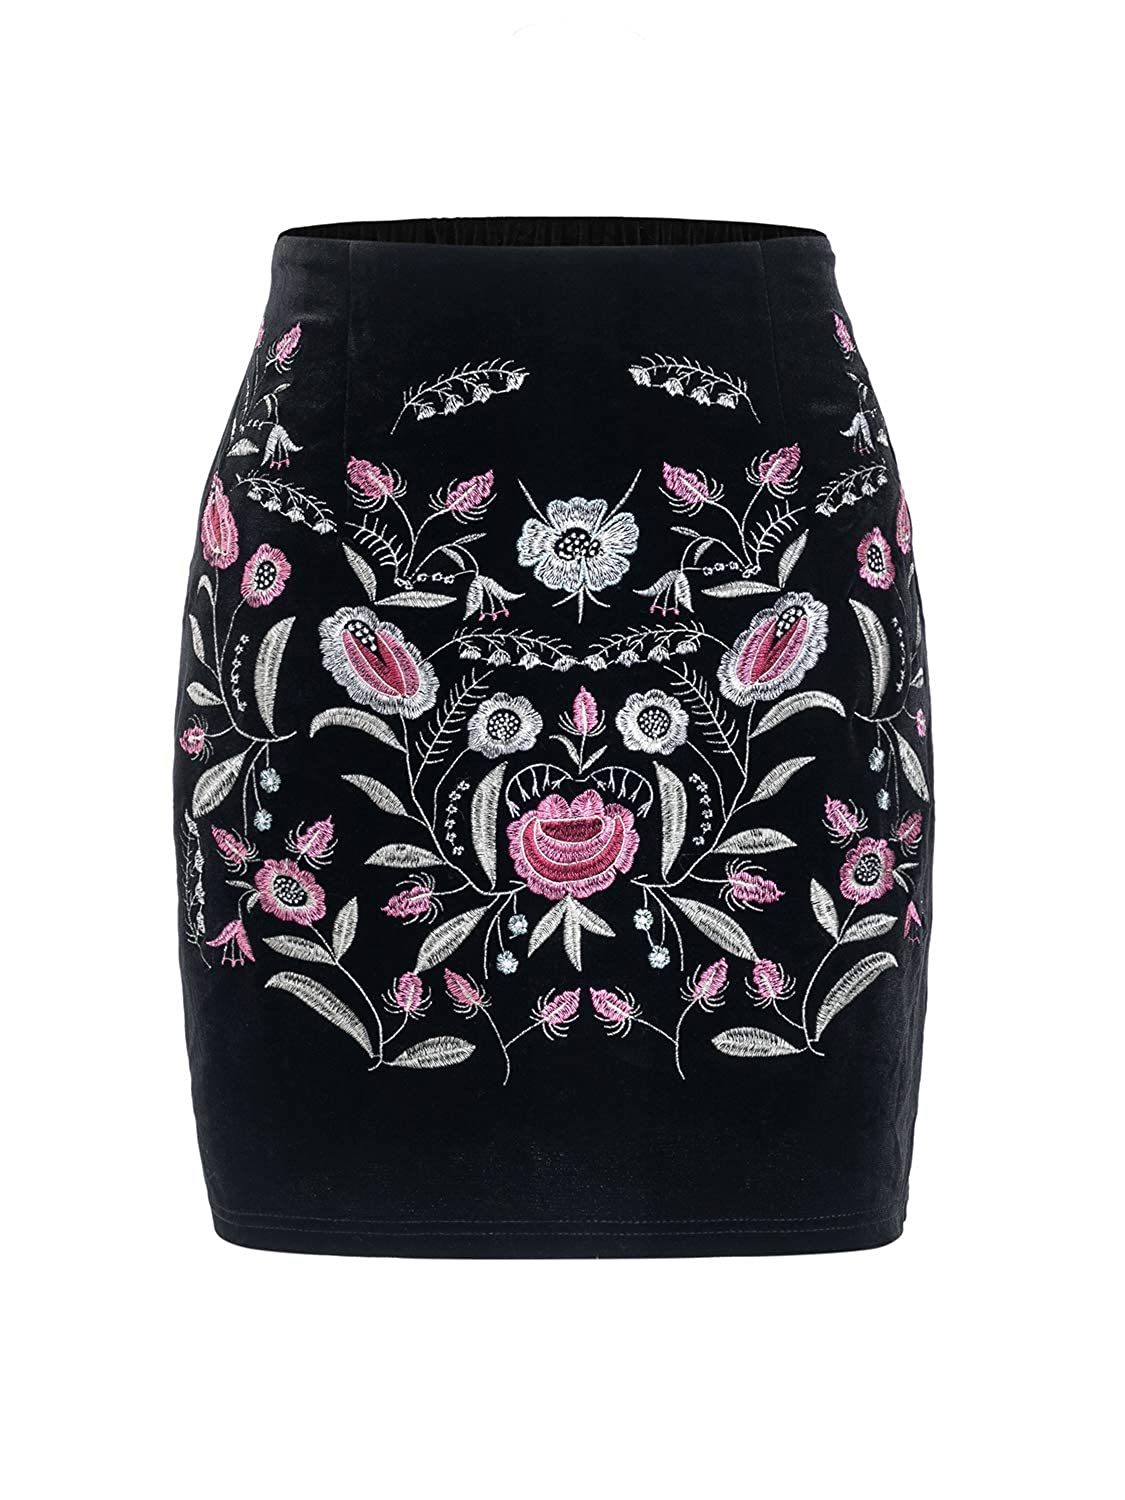 4907e0486 BerryGo Women's High Waist Embroidered Mini Skirt Boho Floral Pencil Skirt:  Amazon.ca: Clothing & Accessories